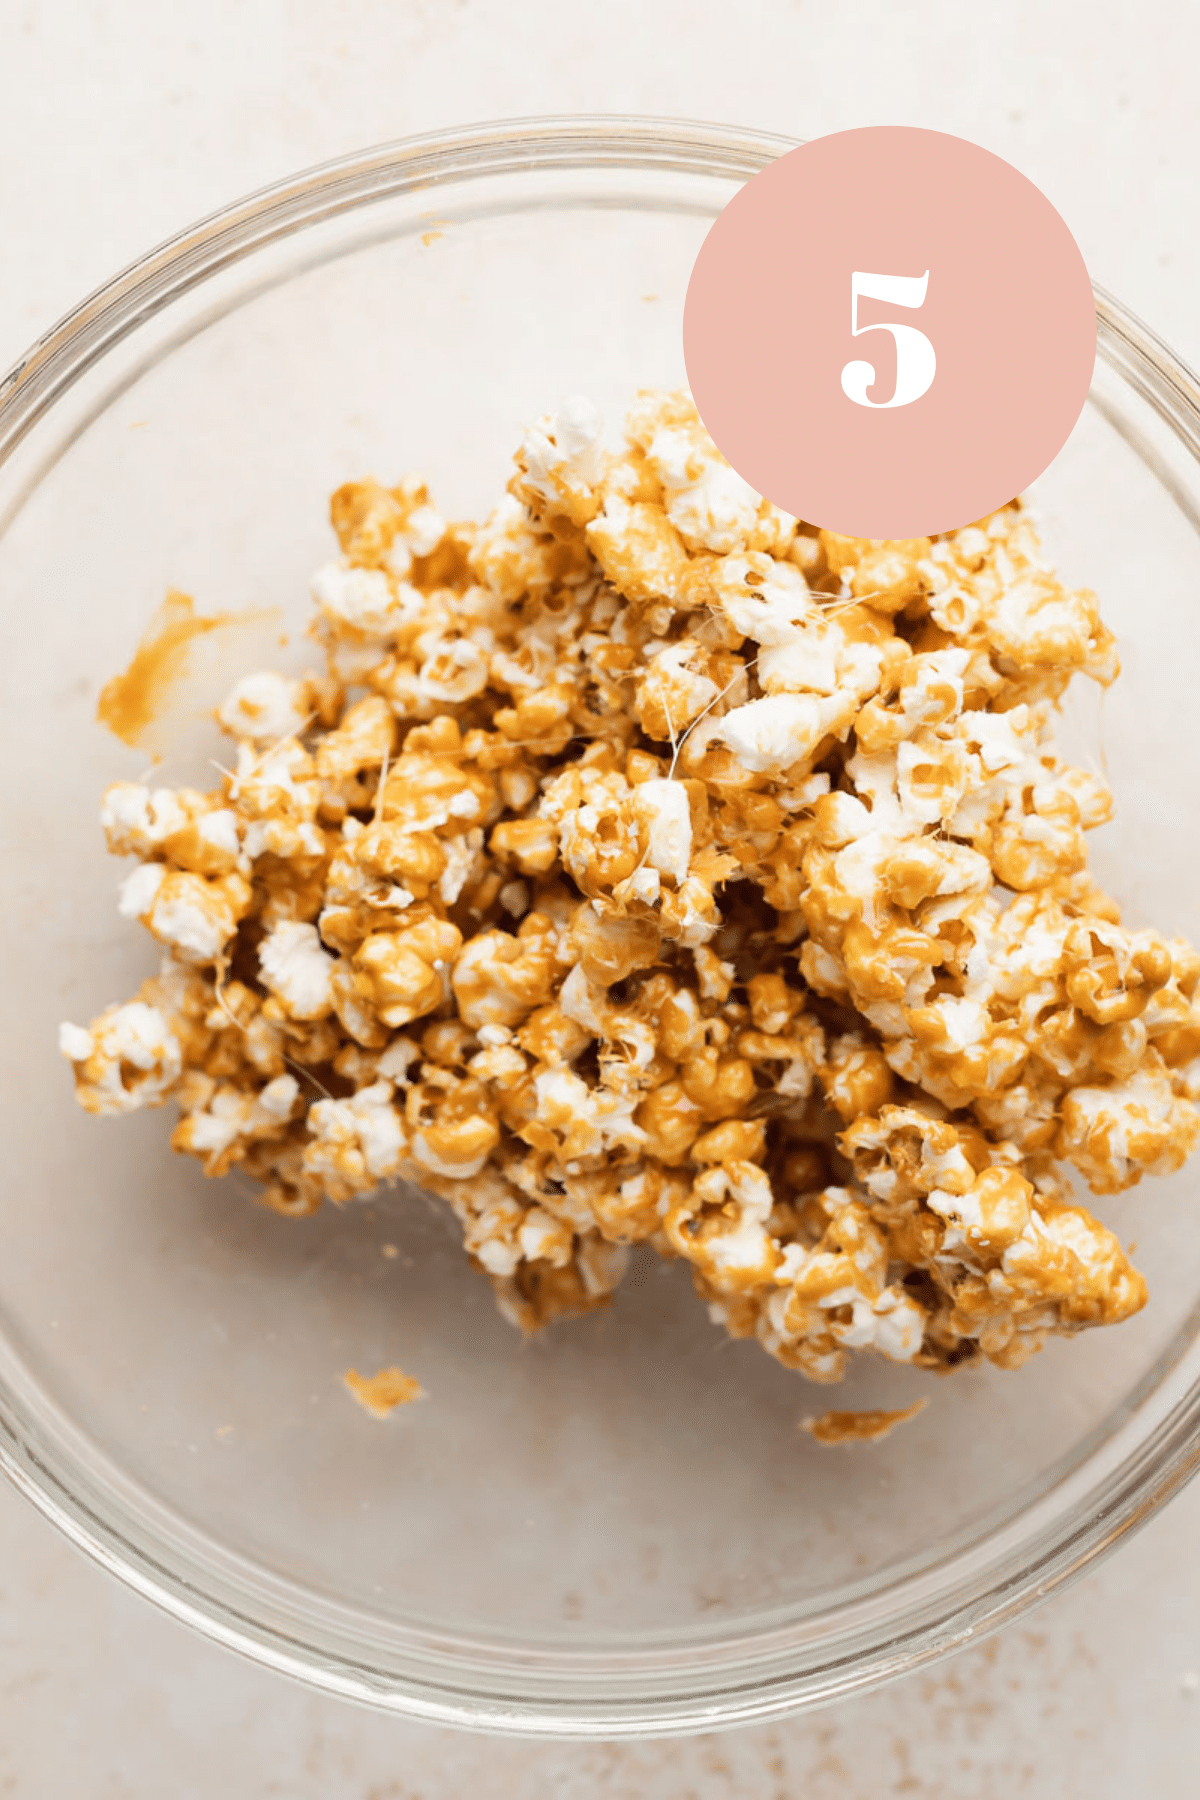 a glass bowl with the finished coated popcorn cooling